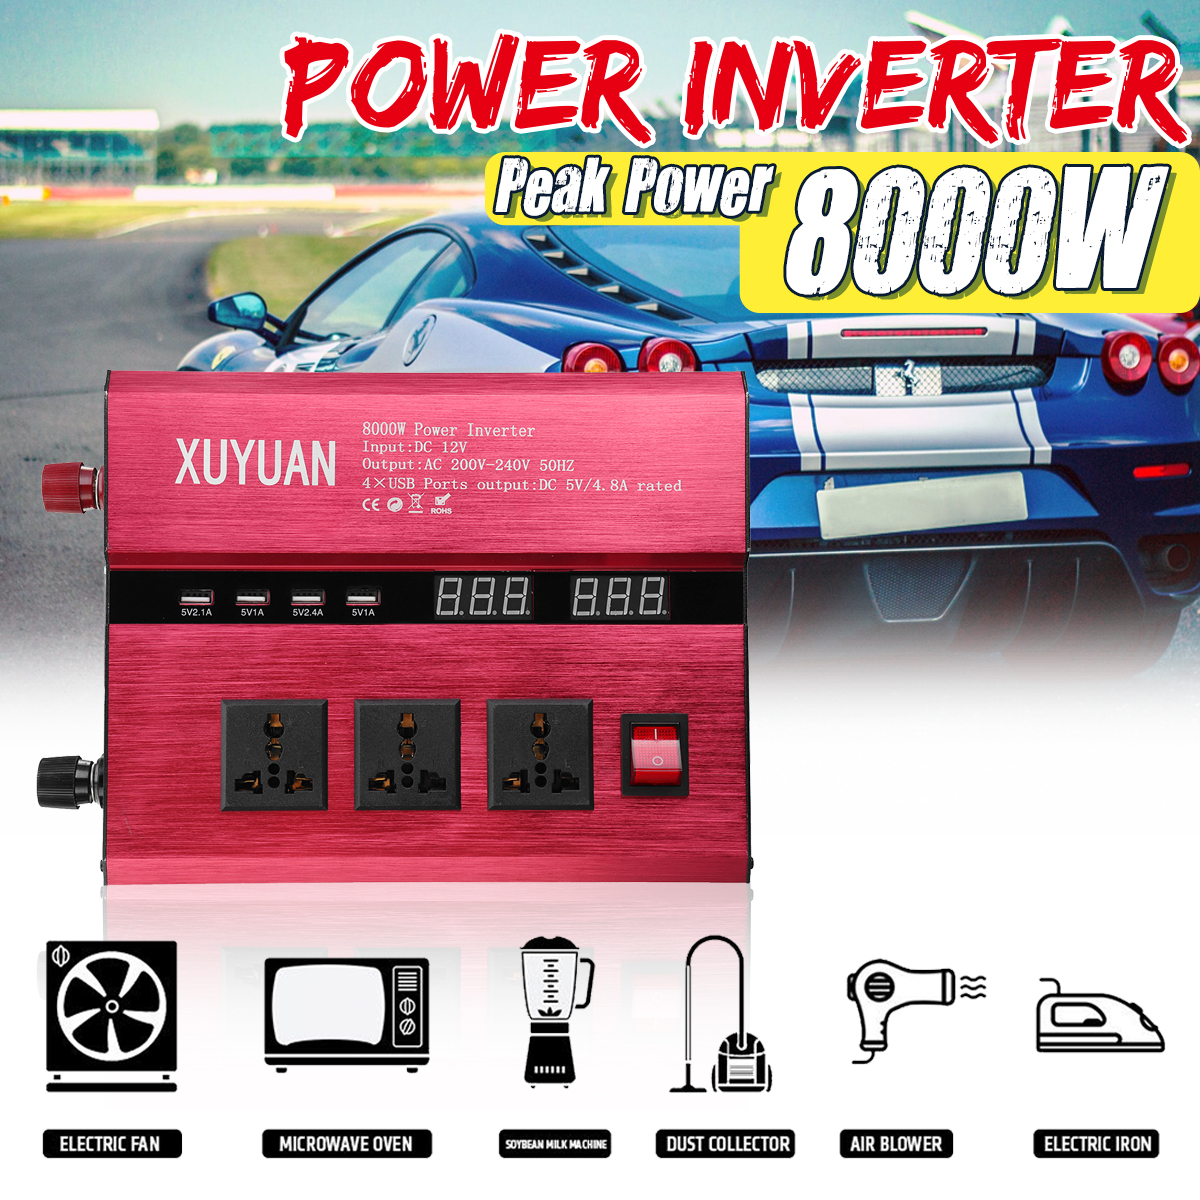 Inverter 12V 220V 8000W Peak Car Power Inverter Voltage Transformer Converter 12 220 Charger Solar Inversor 12V 220V LCD Display car inverter 12v 220v power inverters voltage transformer converter 12 220 1000w charger on display solar adapter 12v 220v dy104